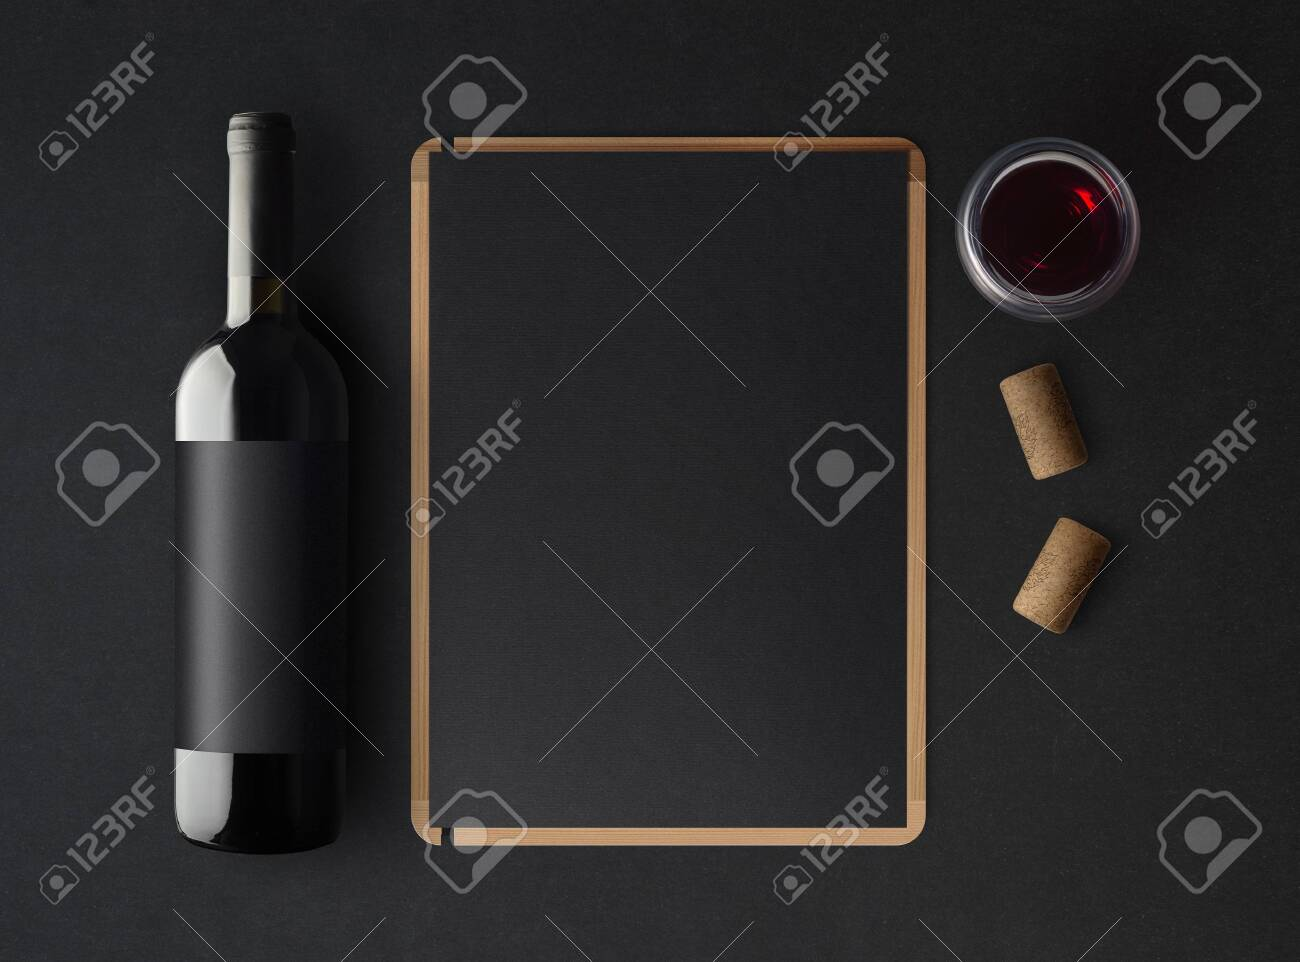 Bottle of red wine with a black label on a dark background, a wine menu template and a glass of wine. Mockup. Top view. - 149691723